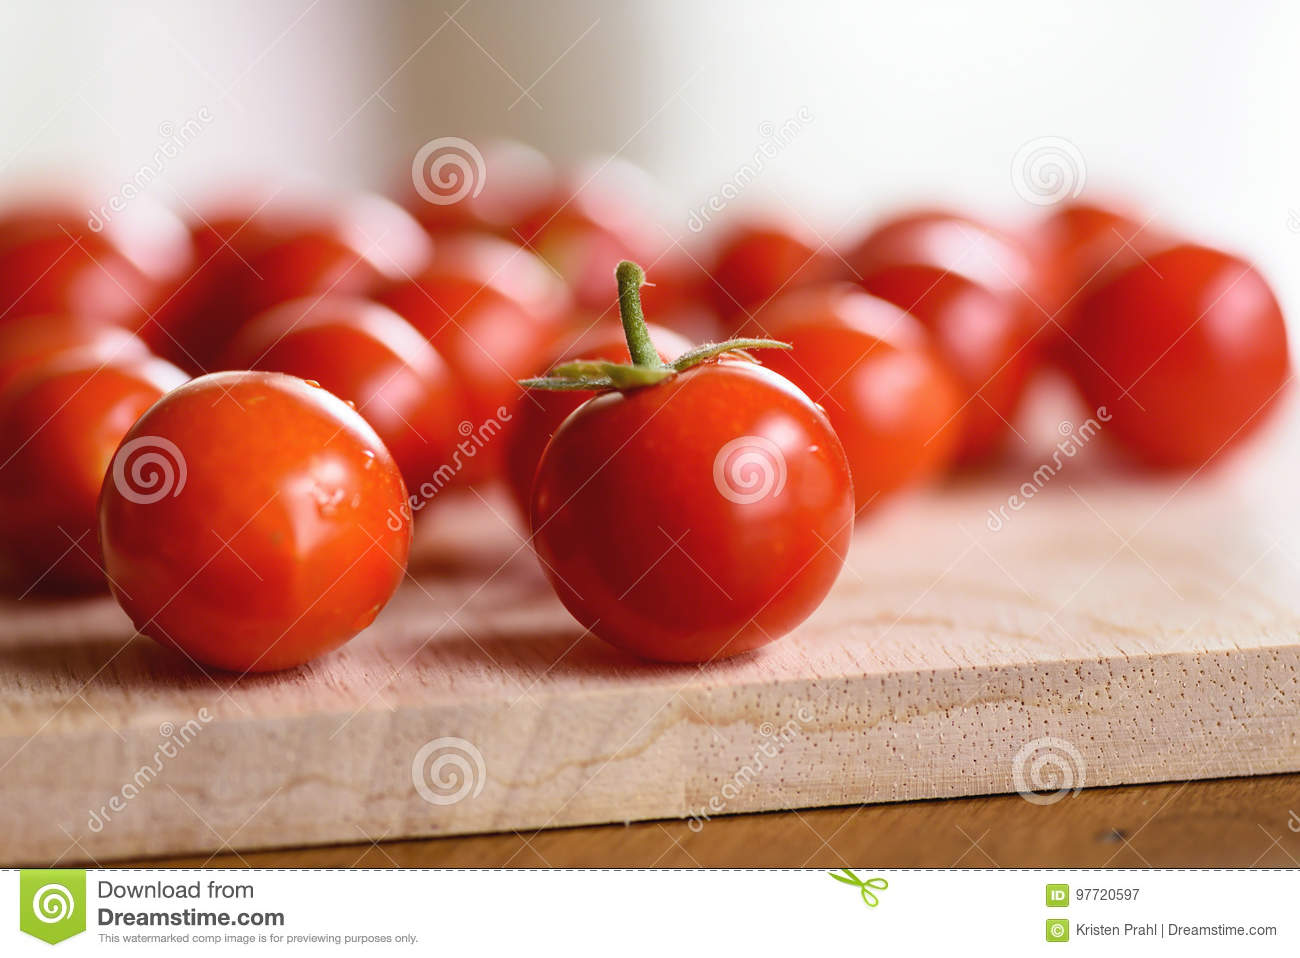 Closeup of fresh homegrown cherry tomatoes on a wooden cutting board